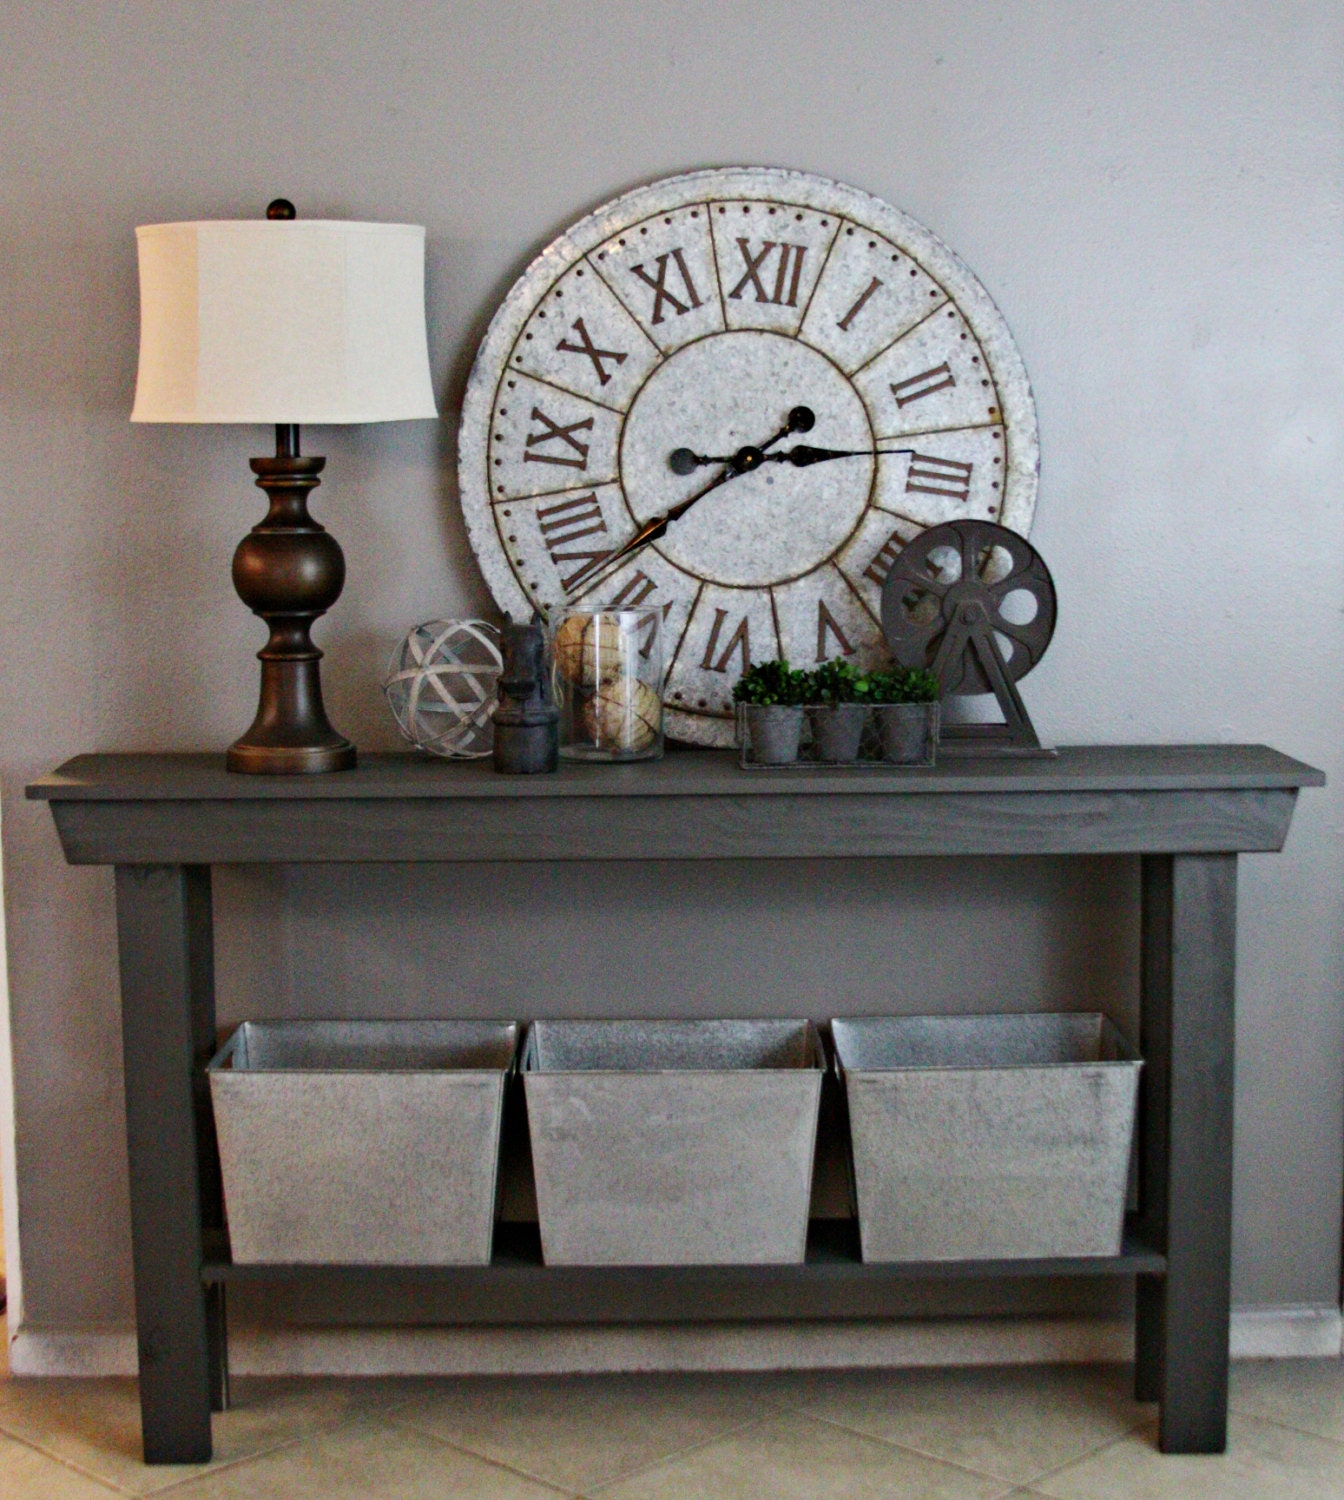 Farmhouse Foyer Table Decor : Entry table farmhouse decor